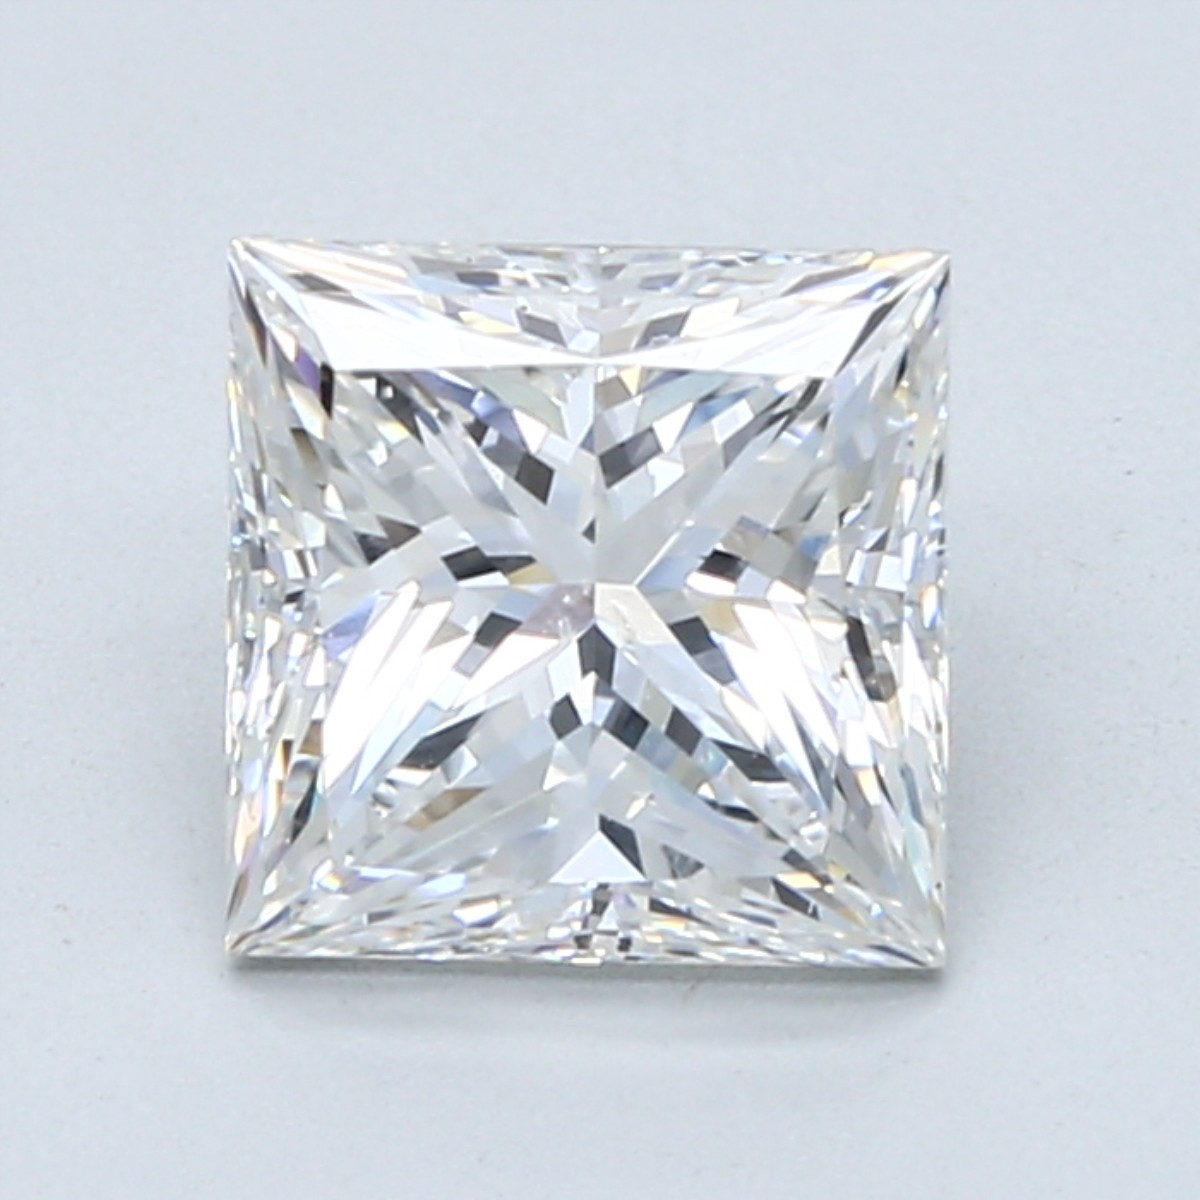 2.5 carat F color princess cut diamond